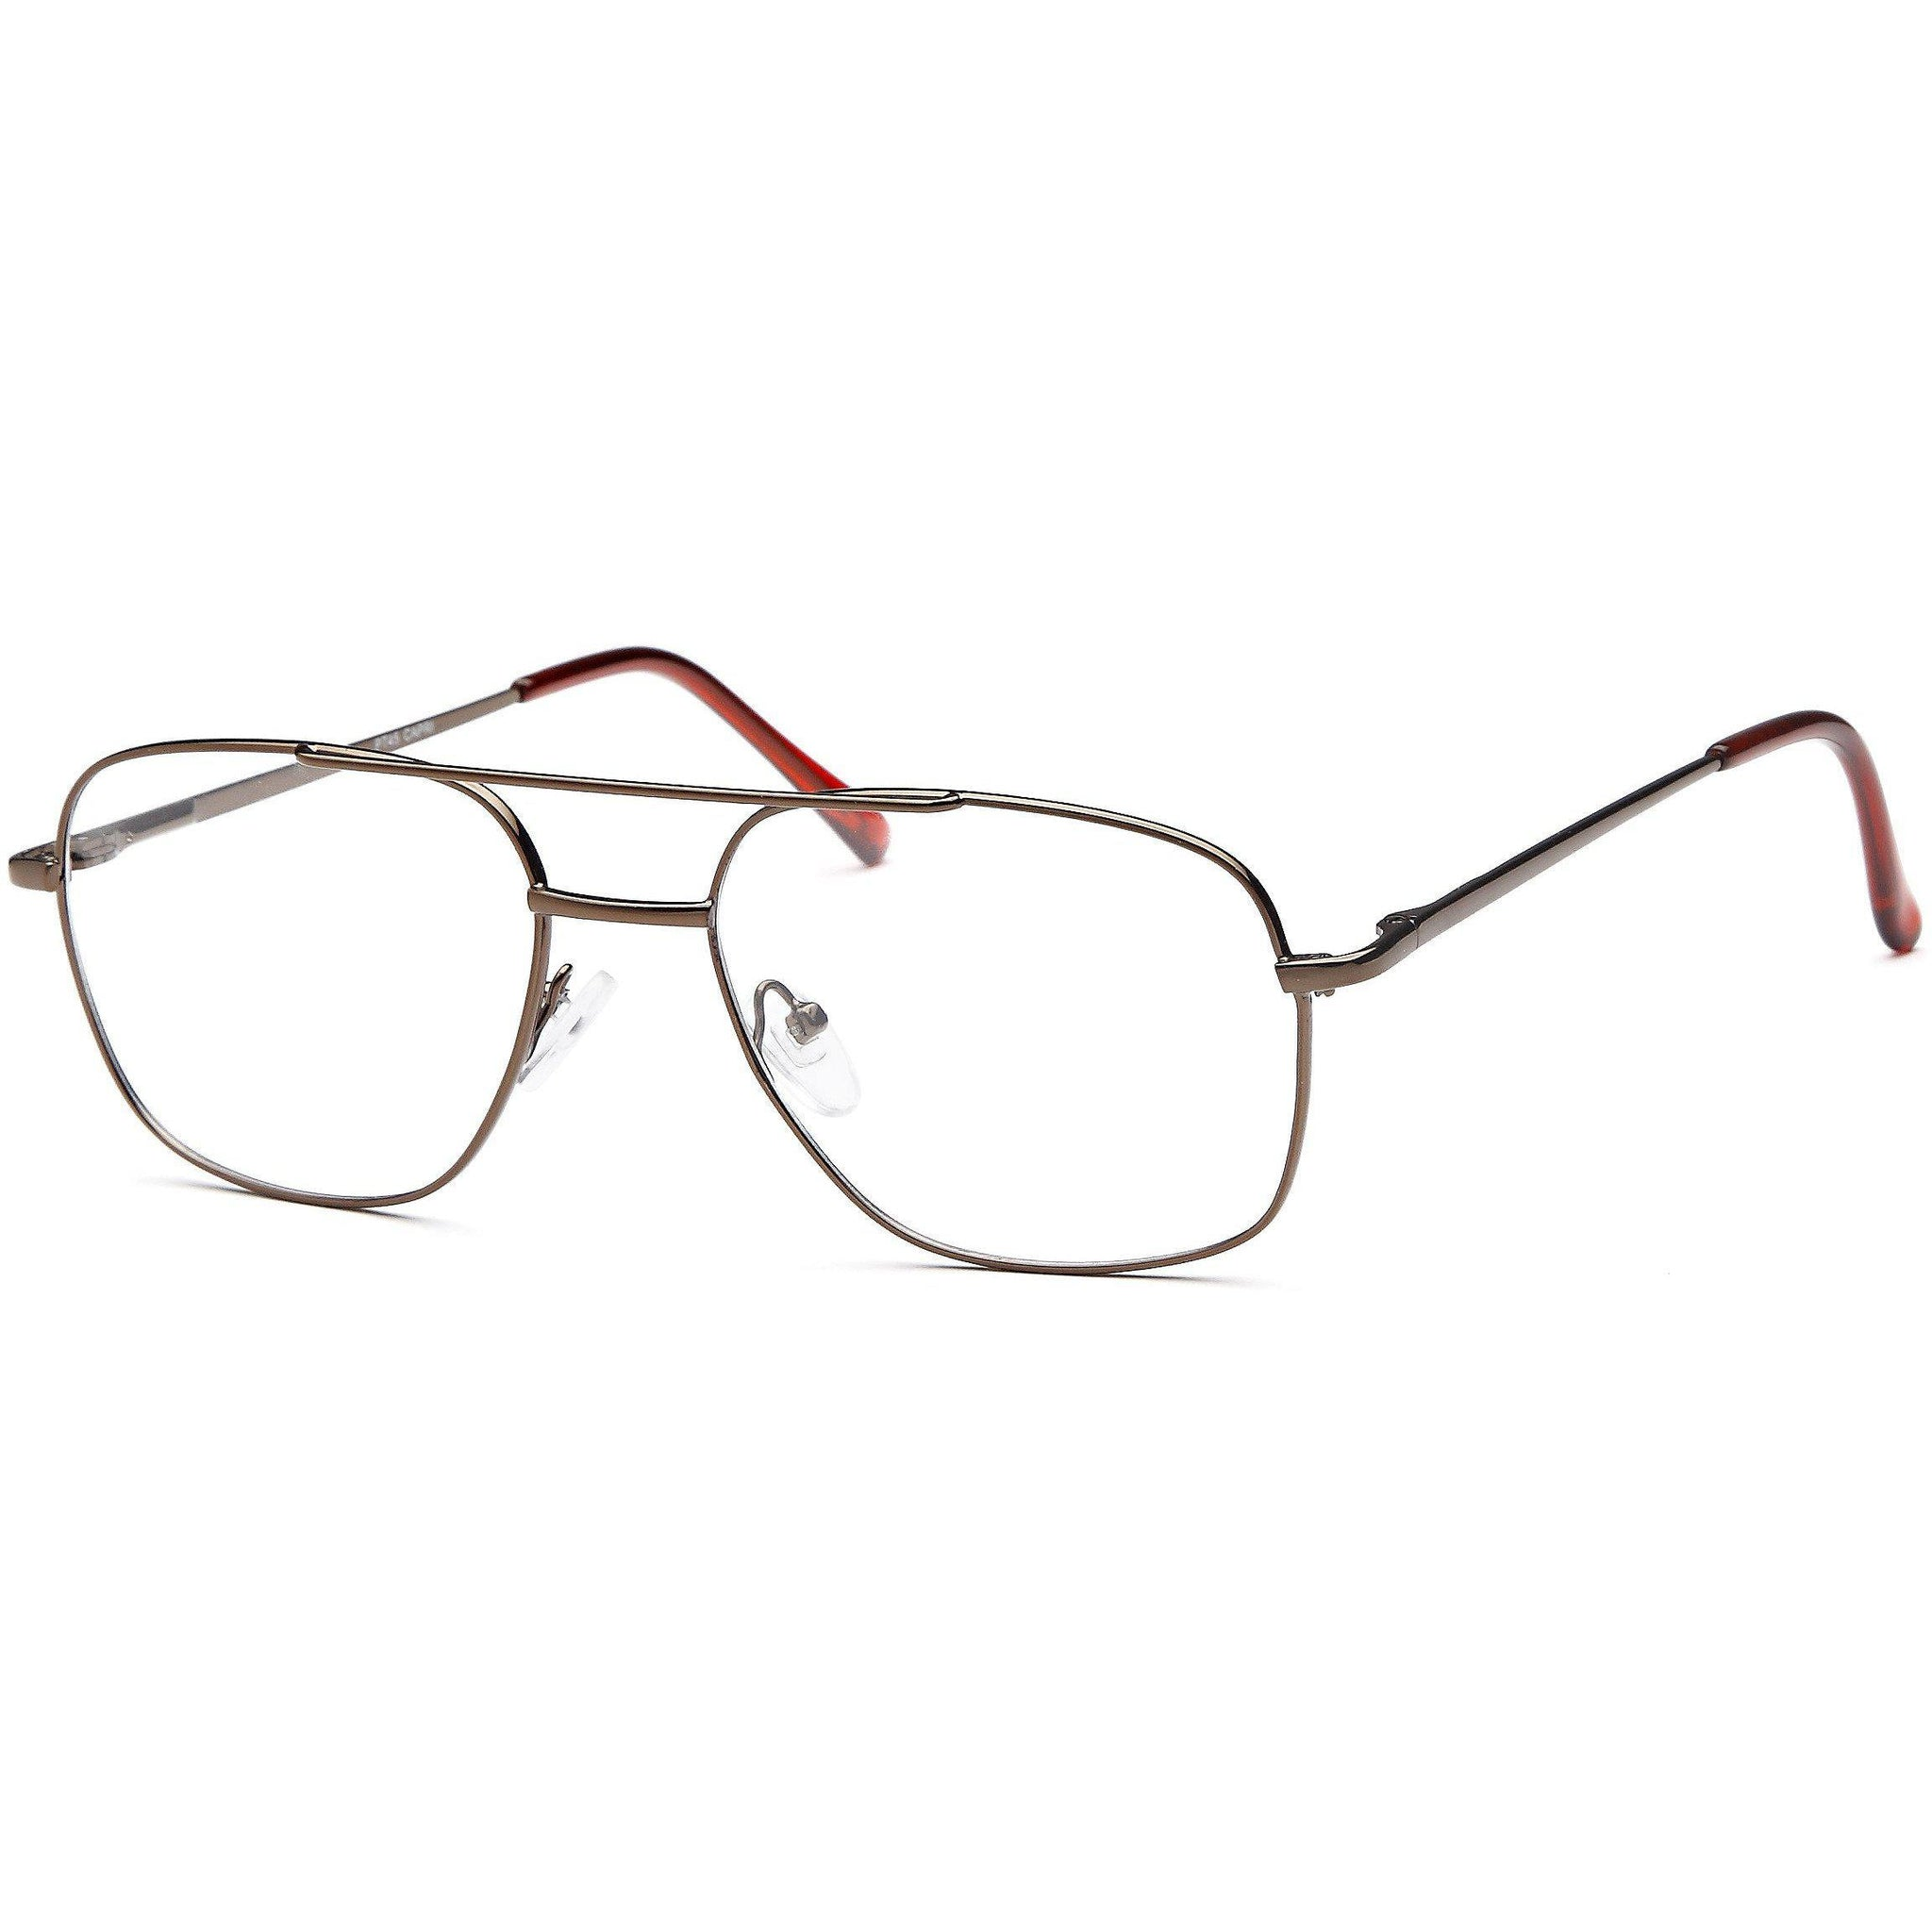 Appletree Prescription Glasses PT 45 Eyeglasses Frame